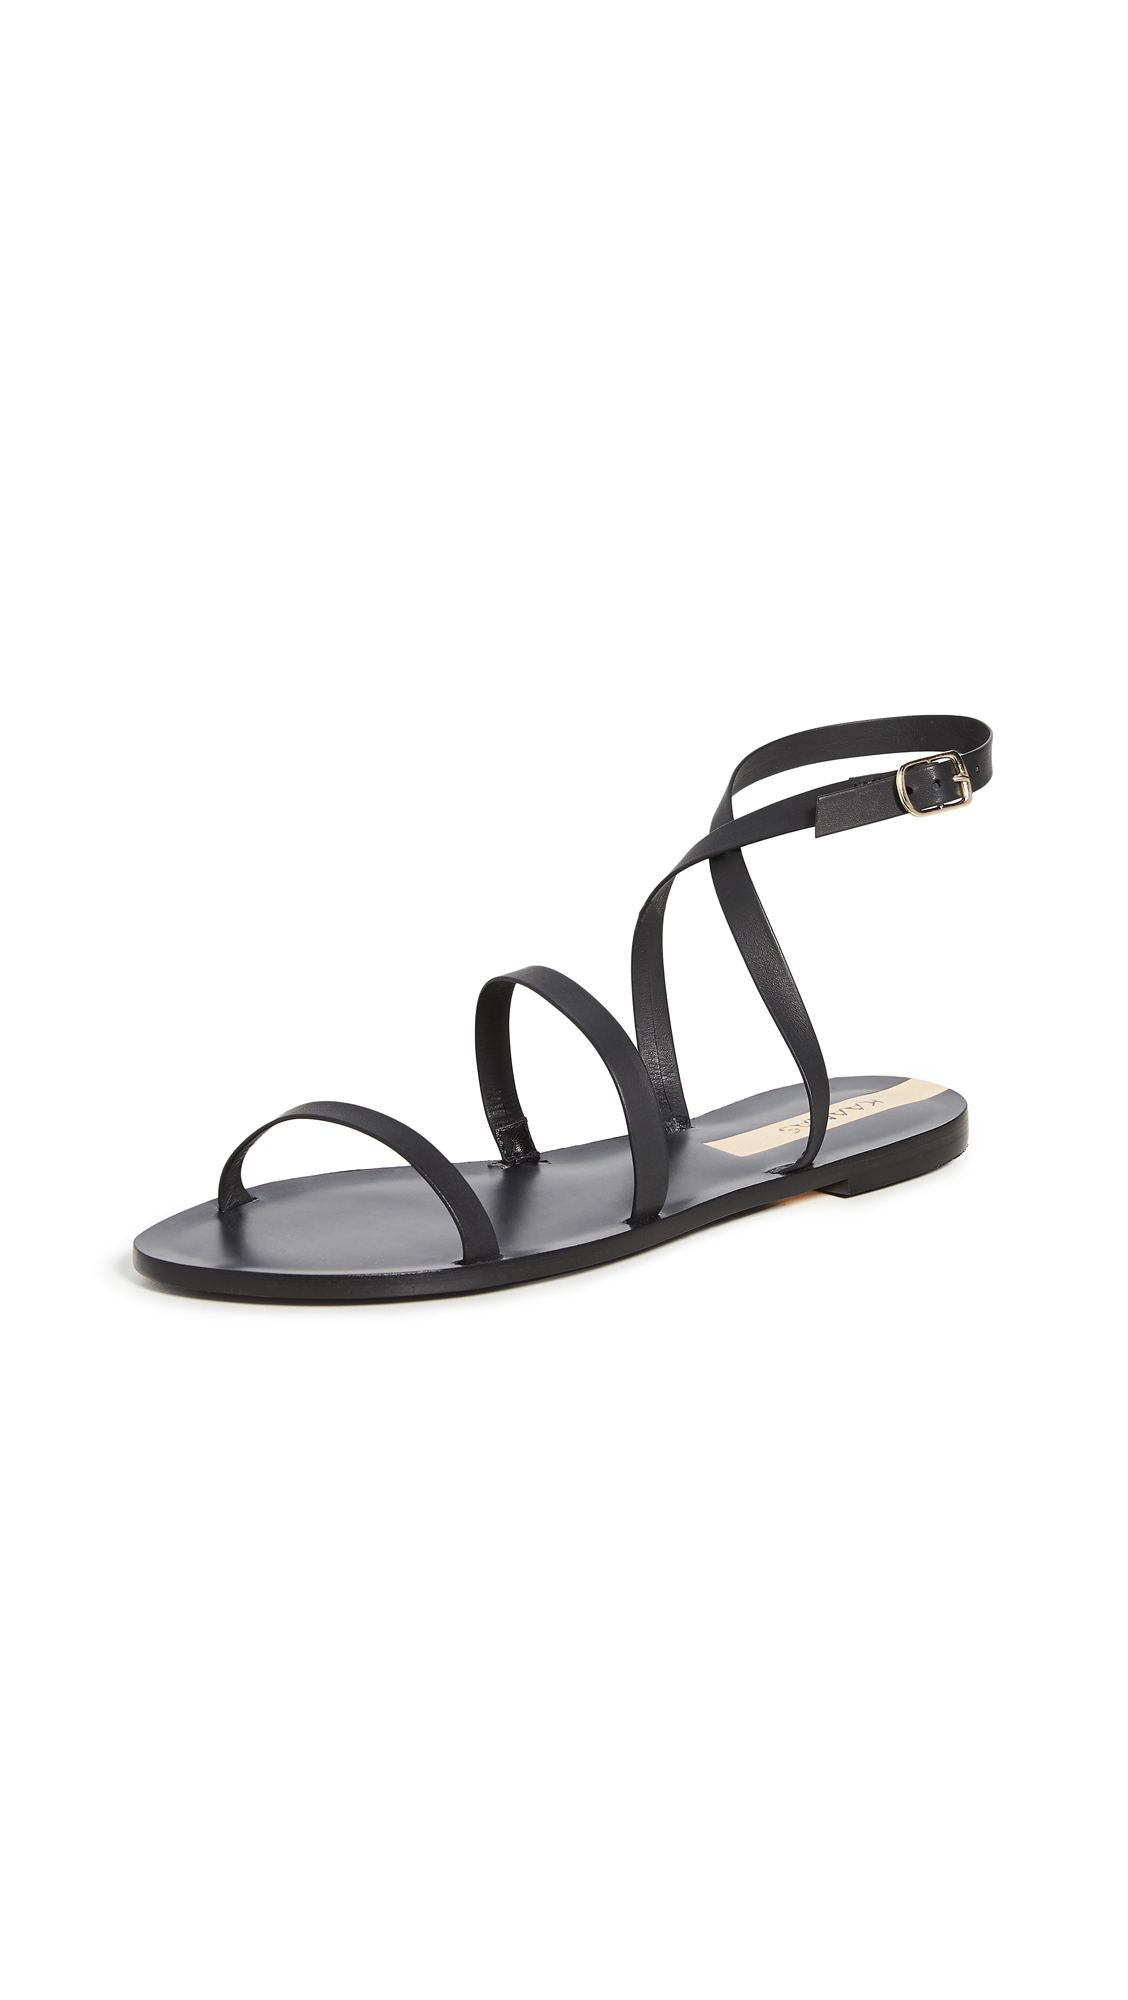 KAANAS Vitoria Gladiator Sandals - 50% Off Sale